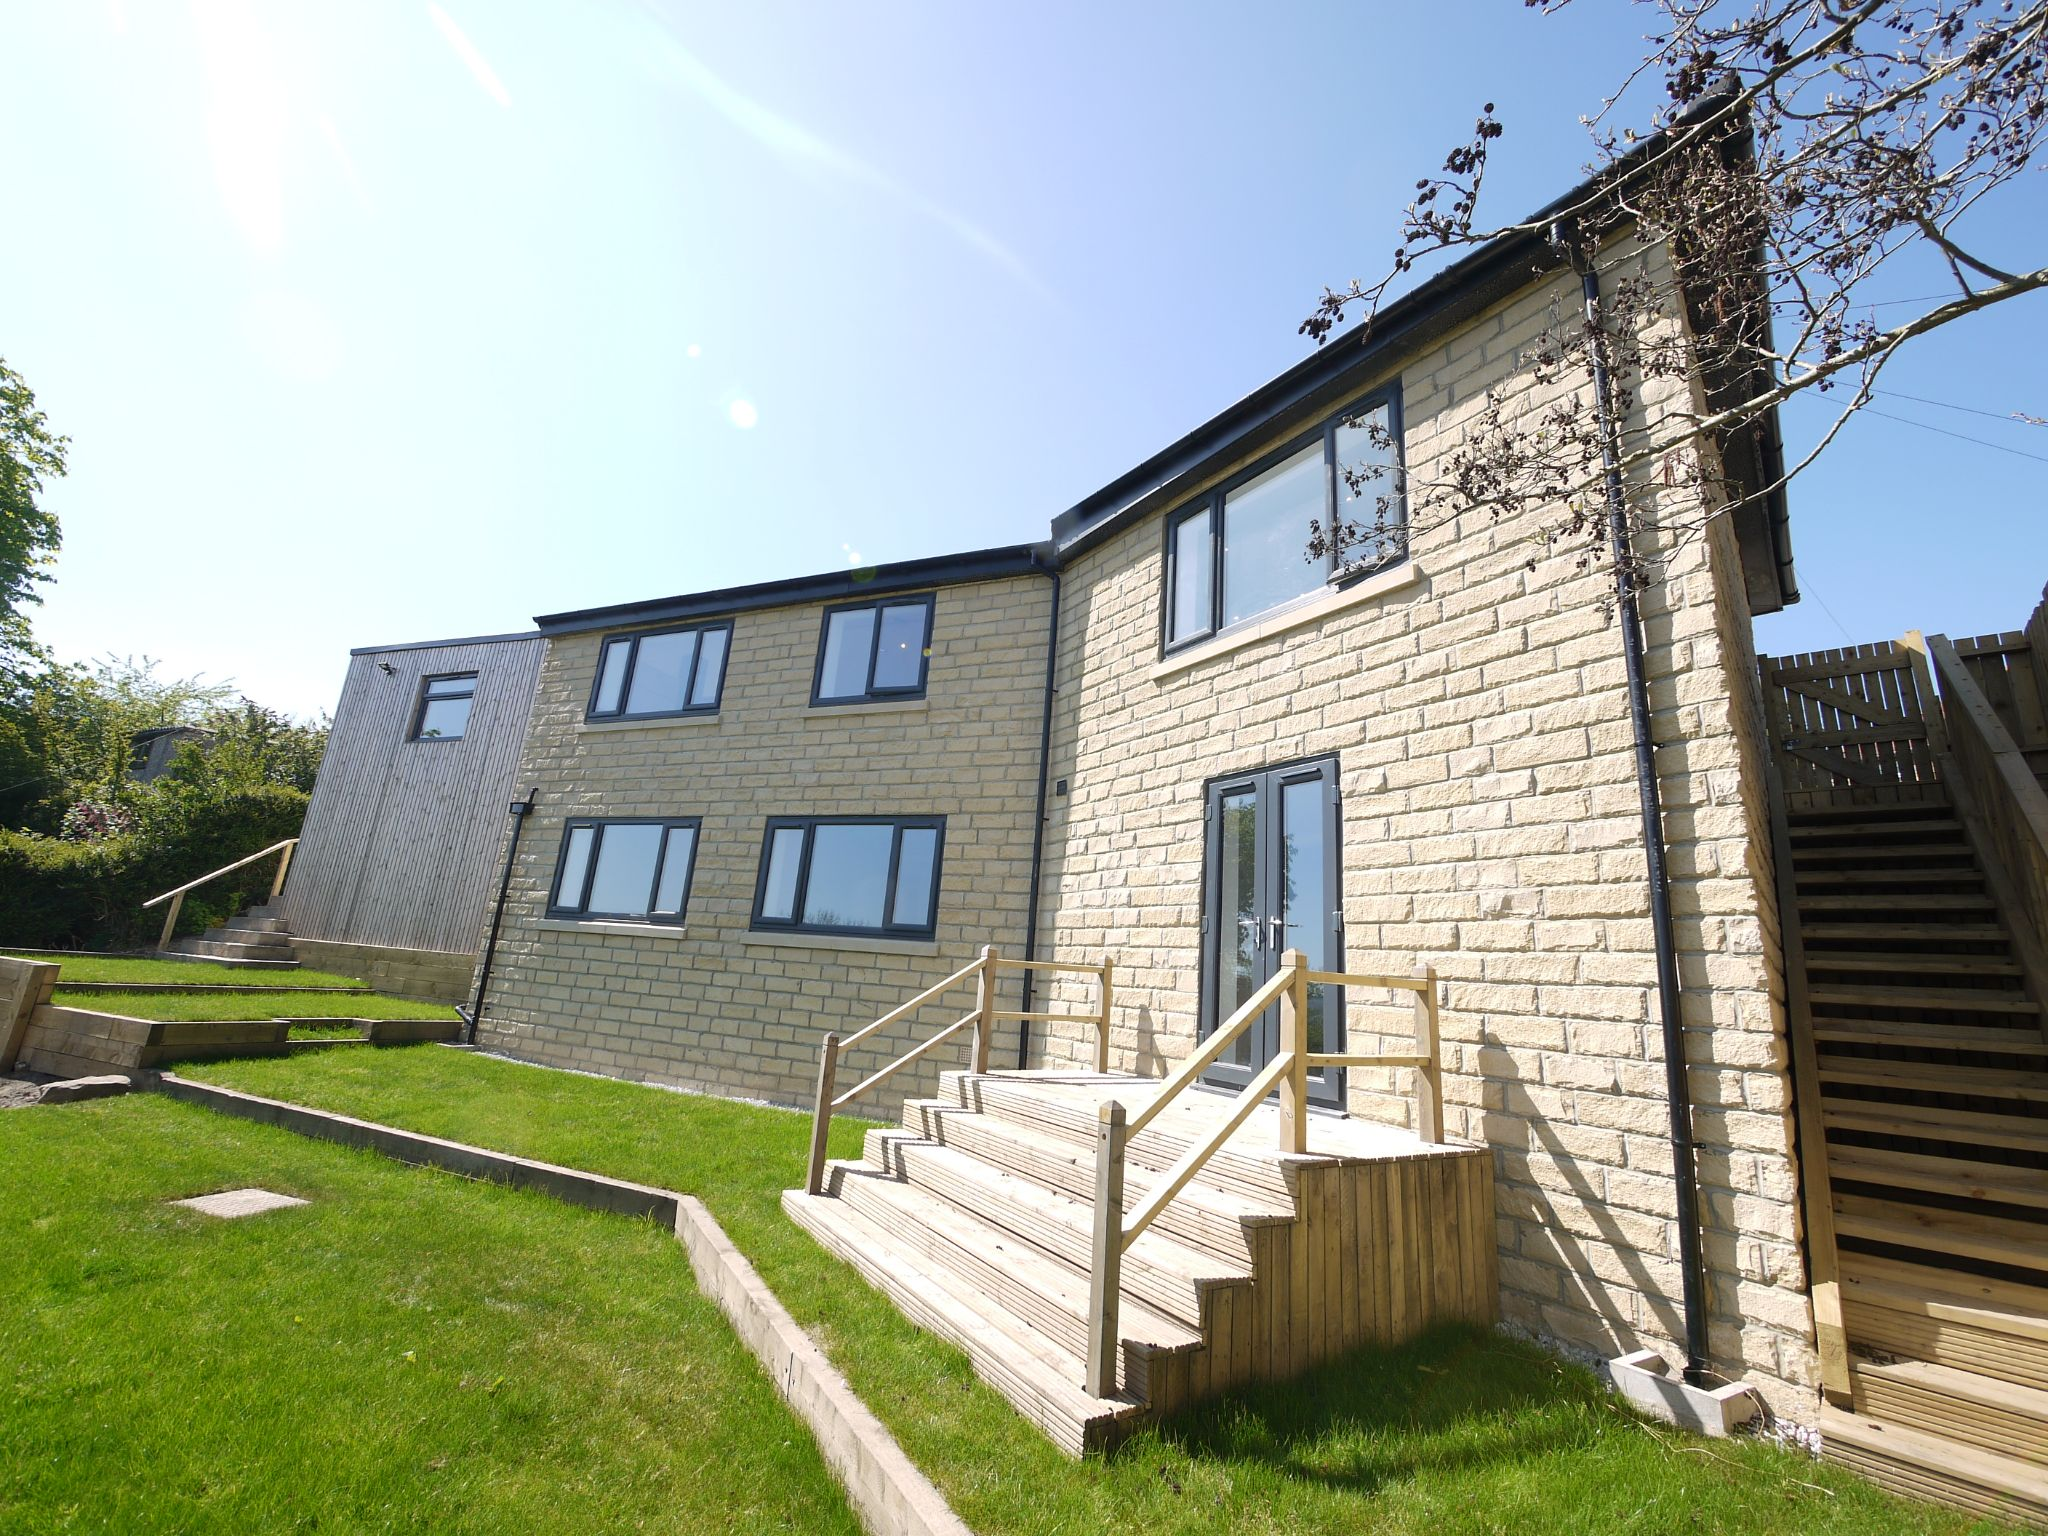 3 bedroom detached house For Sale in Brighouse - Main.